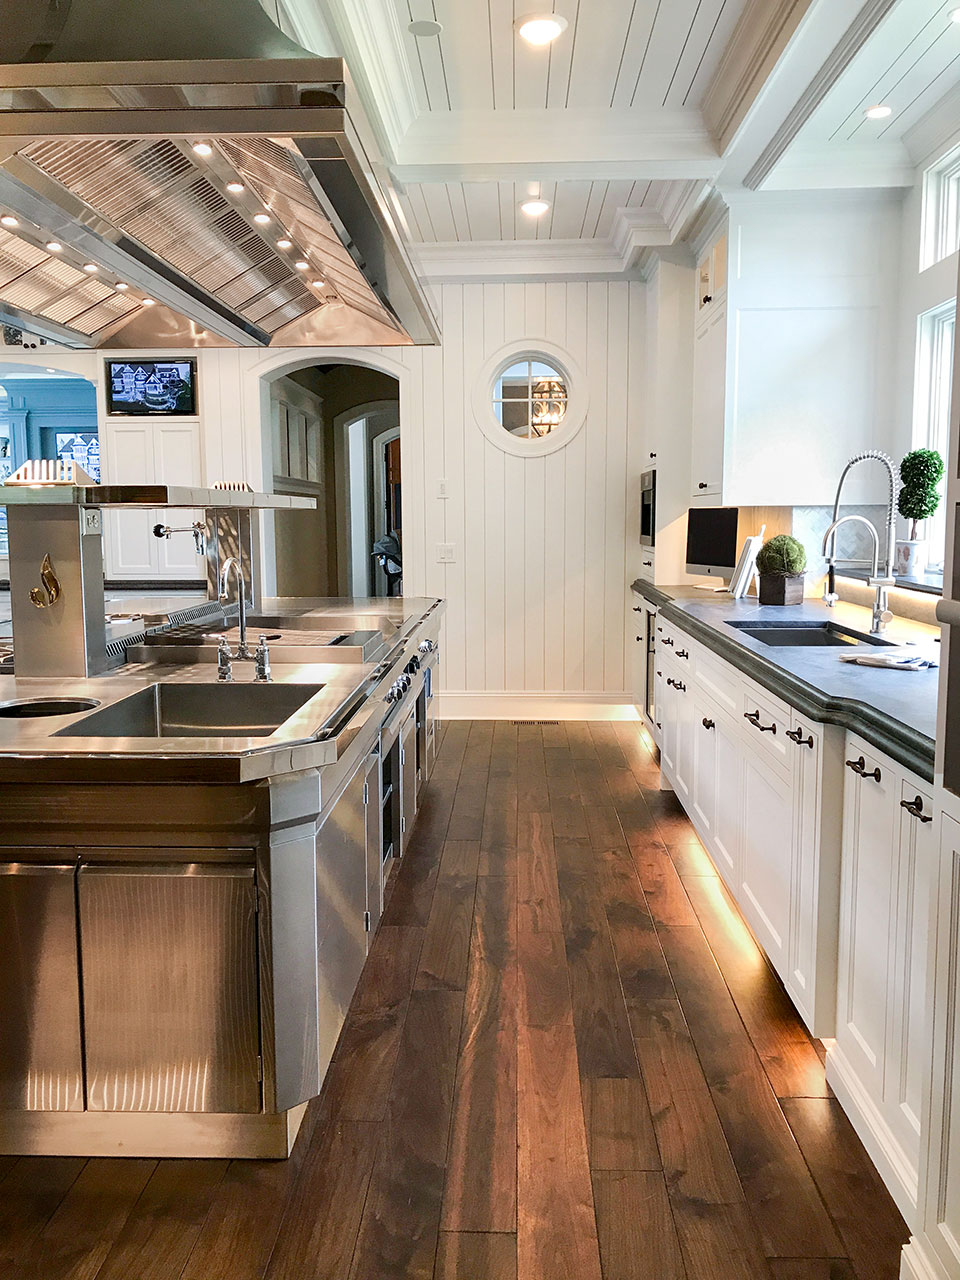 Artisan home tour large gourmet kitchen with white shiplap, custom range and hood, dark rustic hardwood floors